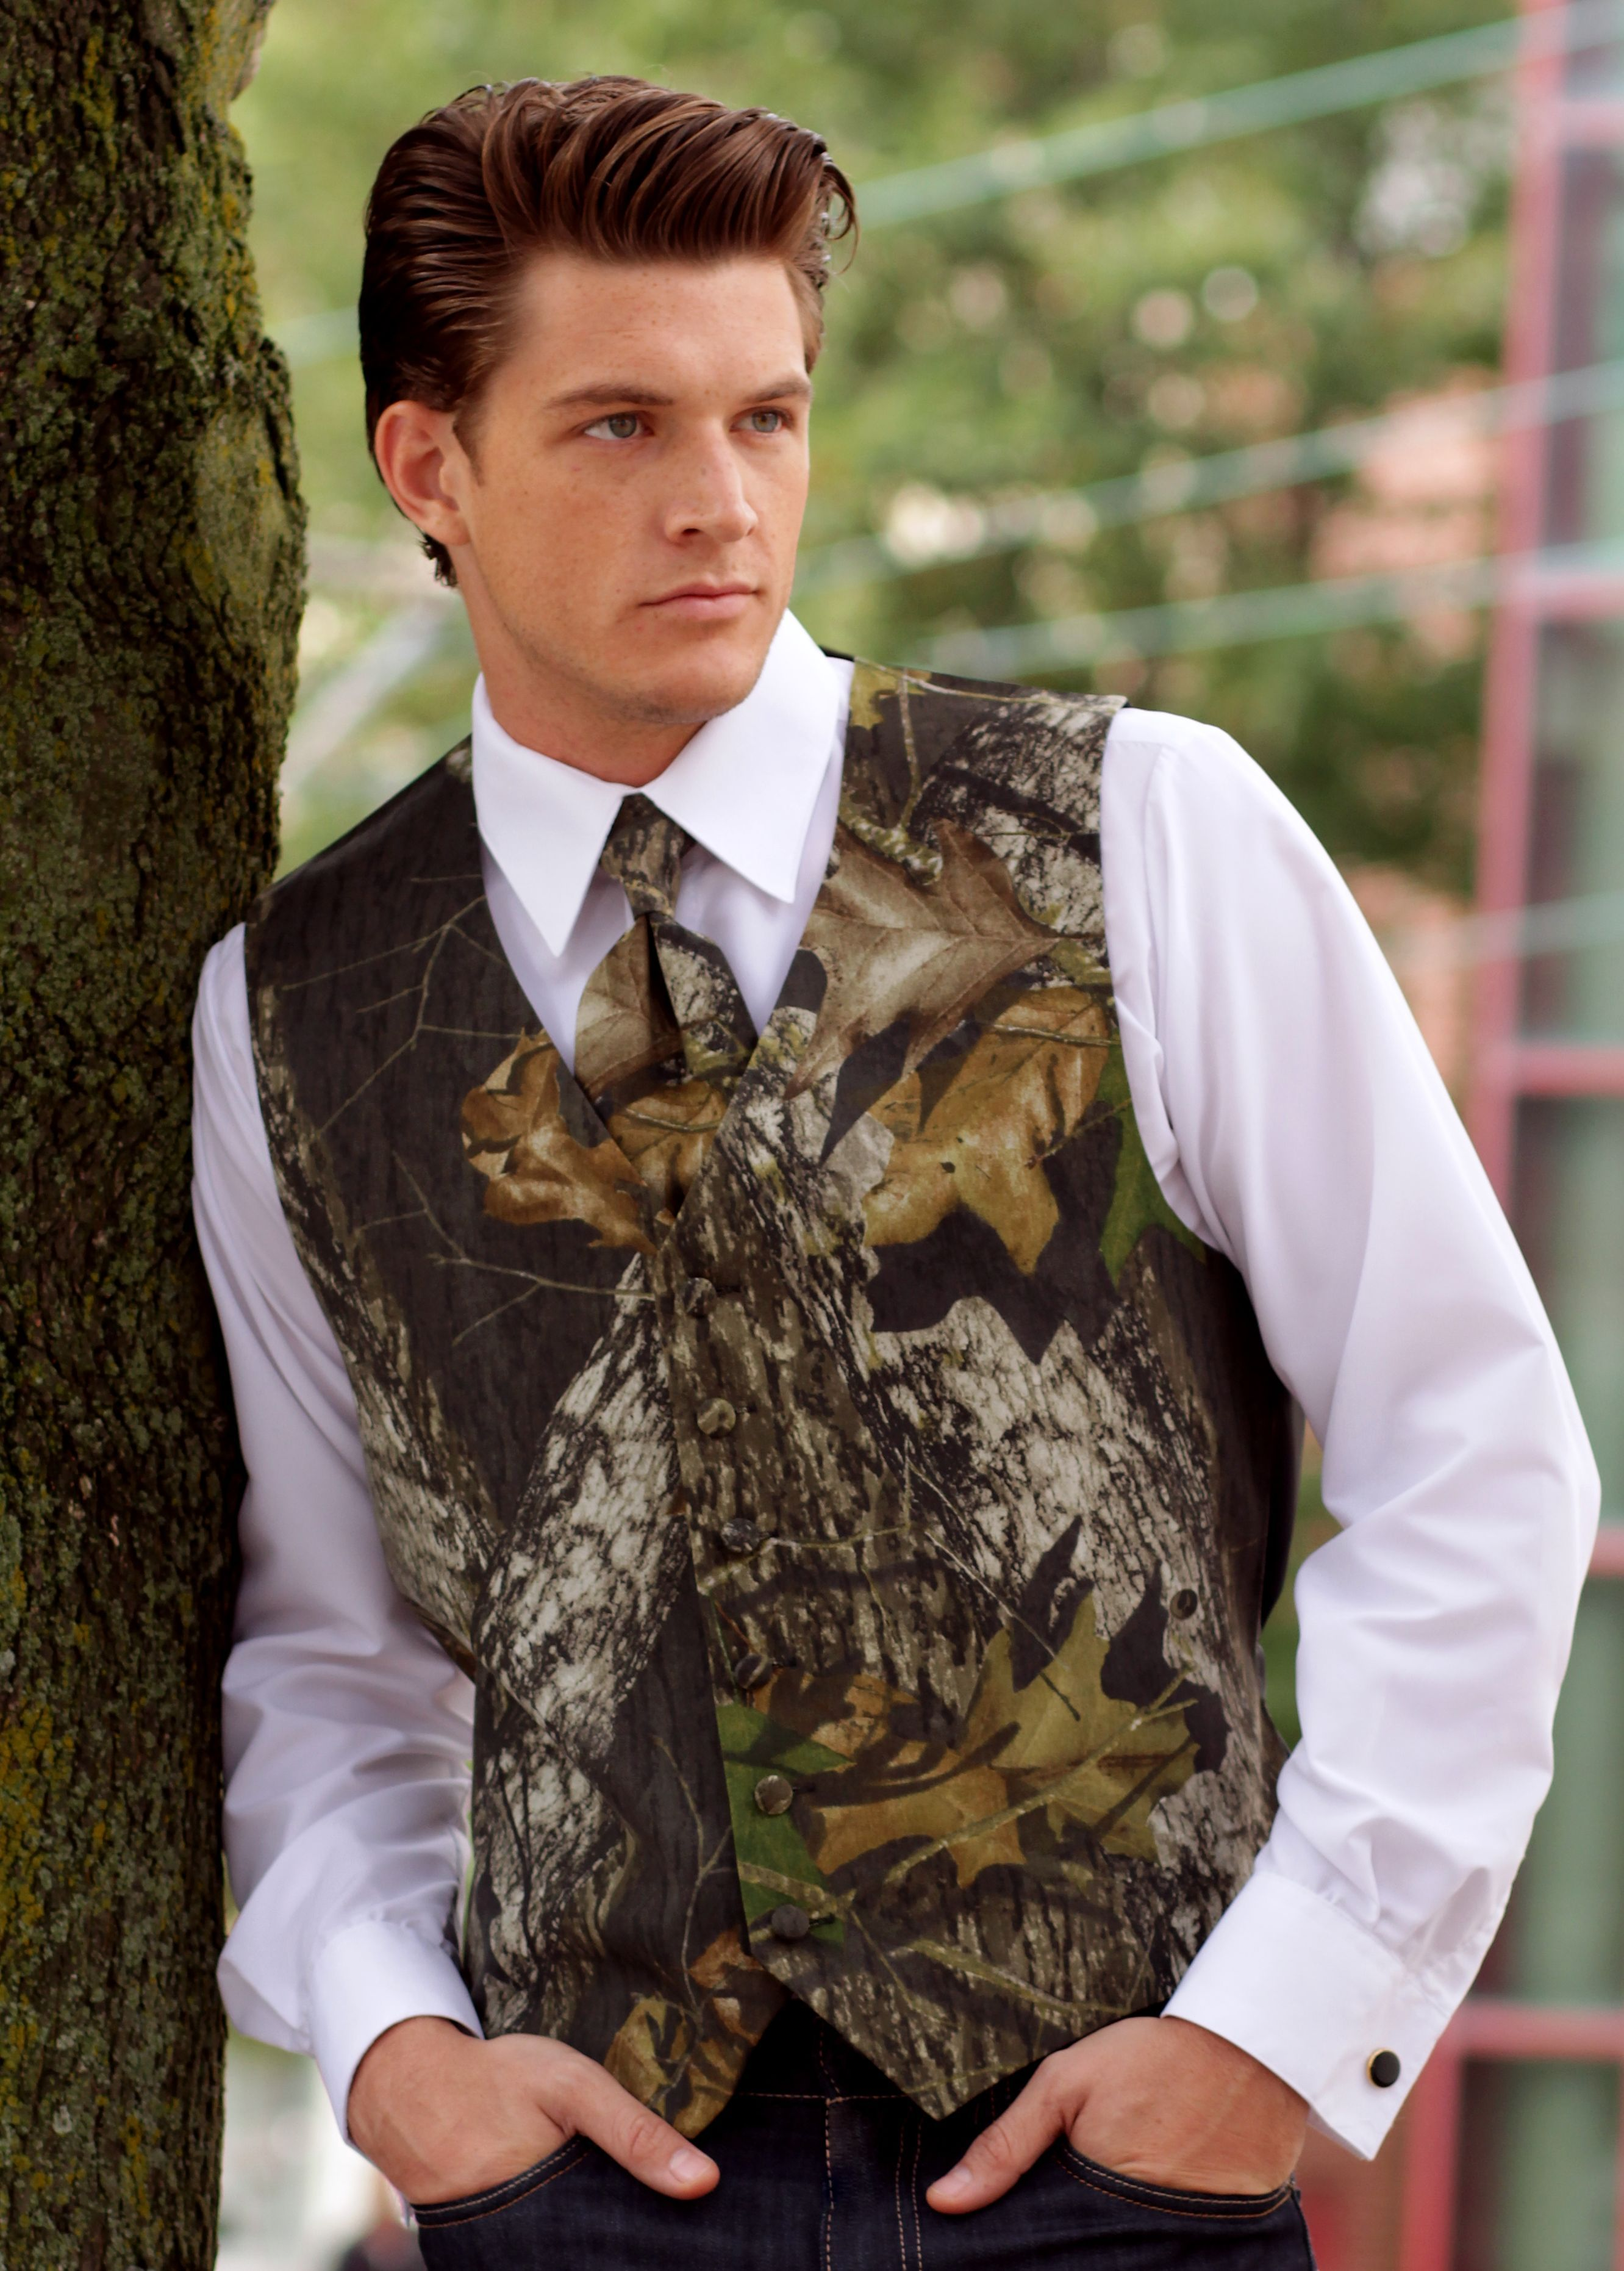 Details About Mossy Oak Break Up Tuxedo Vest Camo Skinny Tie